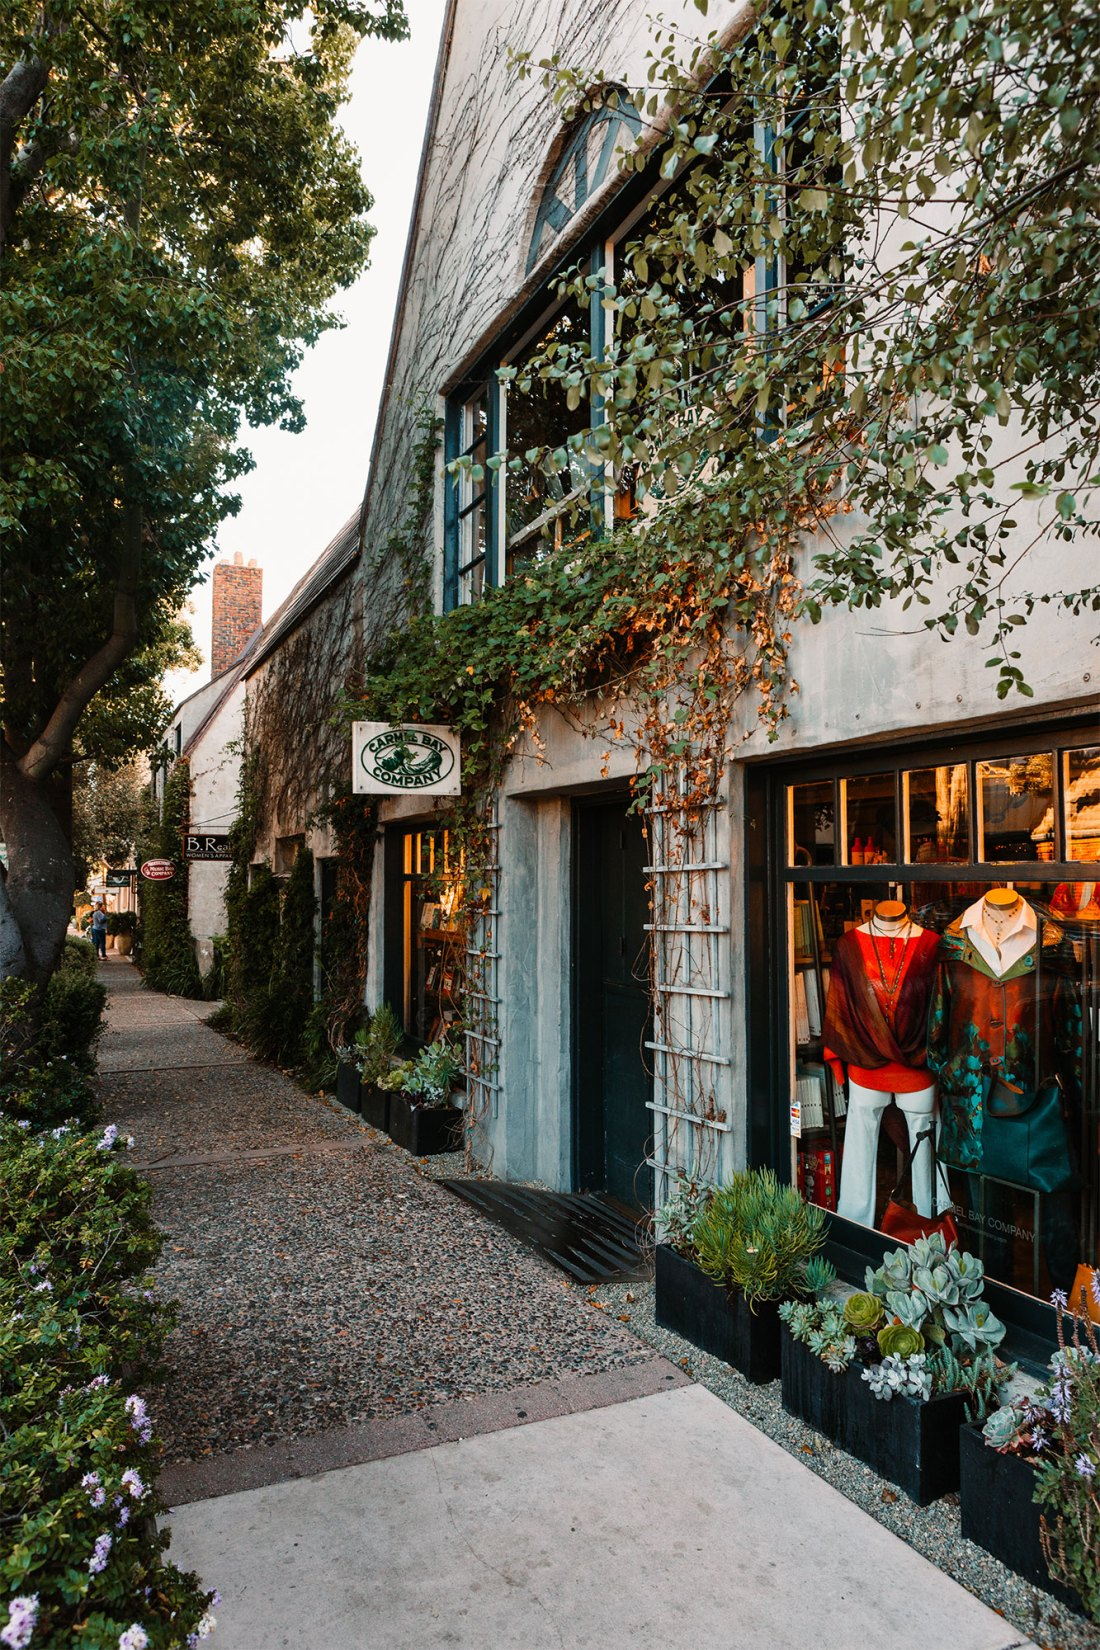 Quaint, vine covered shops in Carmel-by-the-Sea, California | as seen on the Local Love and Wanderlust Blog